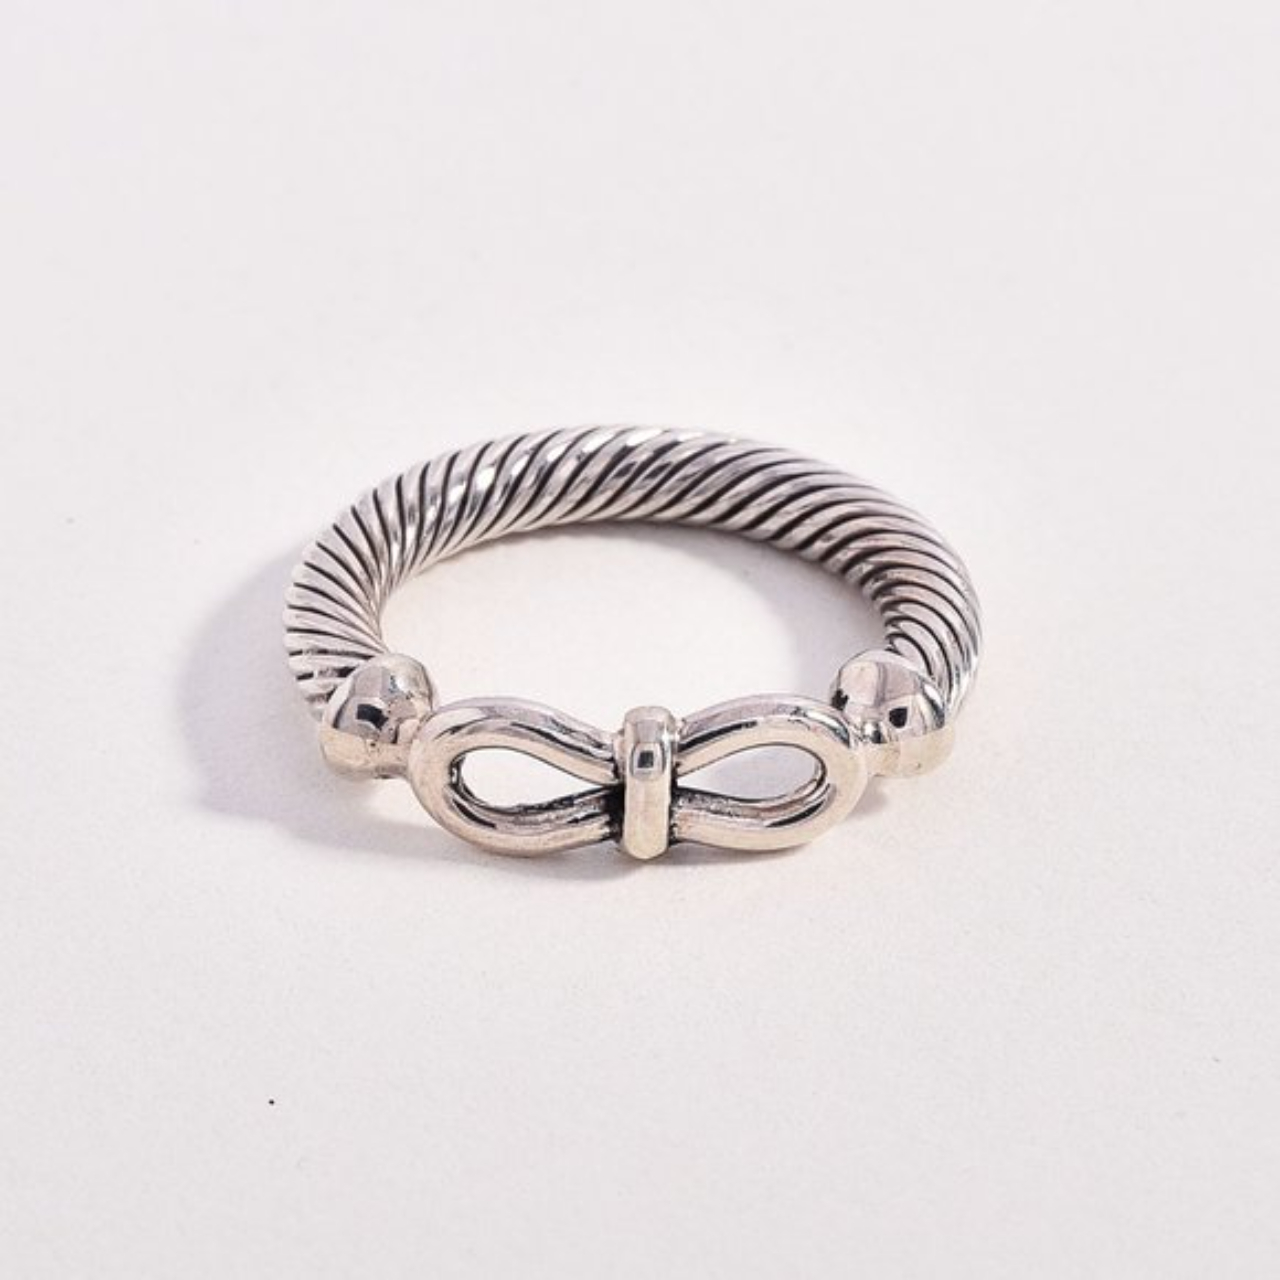 Product Image 1 - Sterling Silver Ring  Sterling Silver  Size 7  TM0014  Sterling